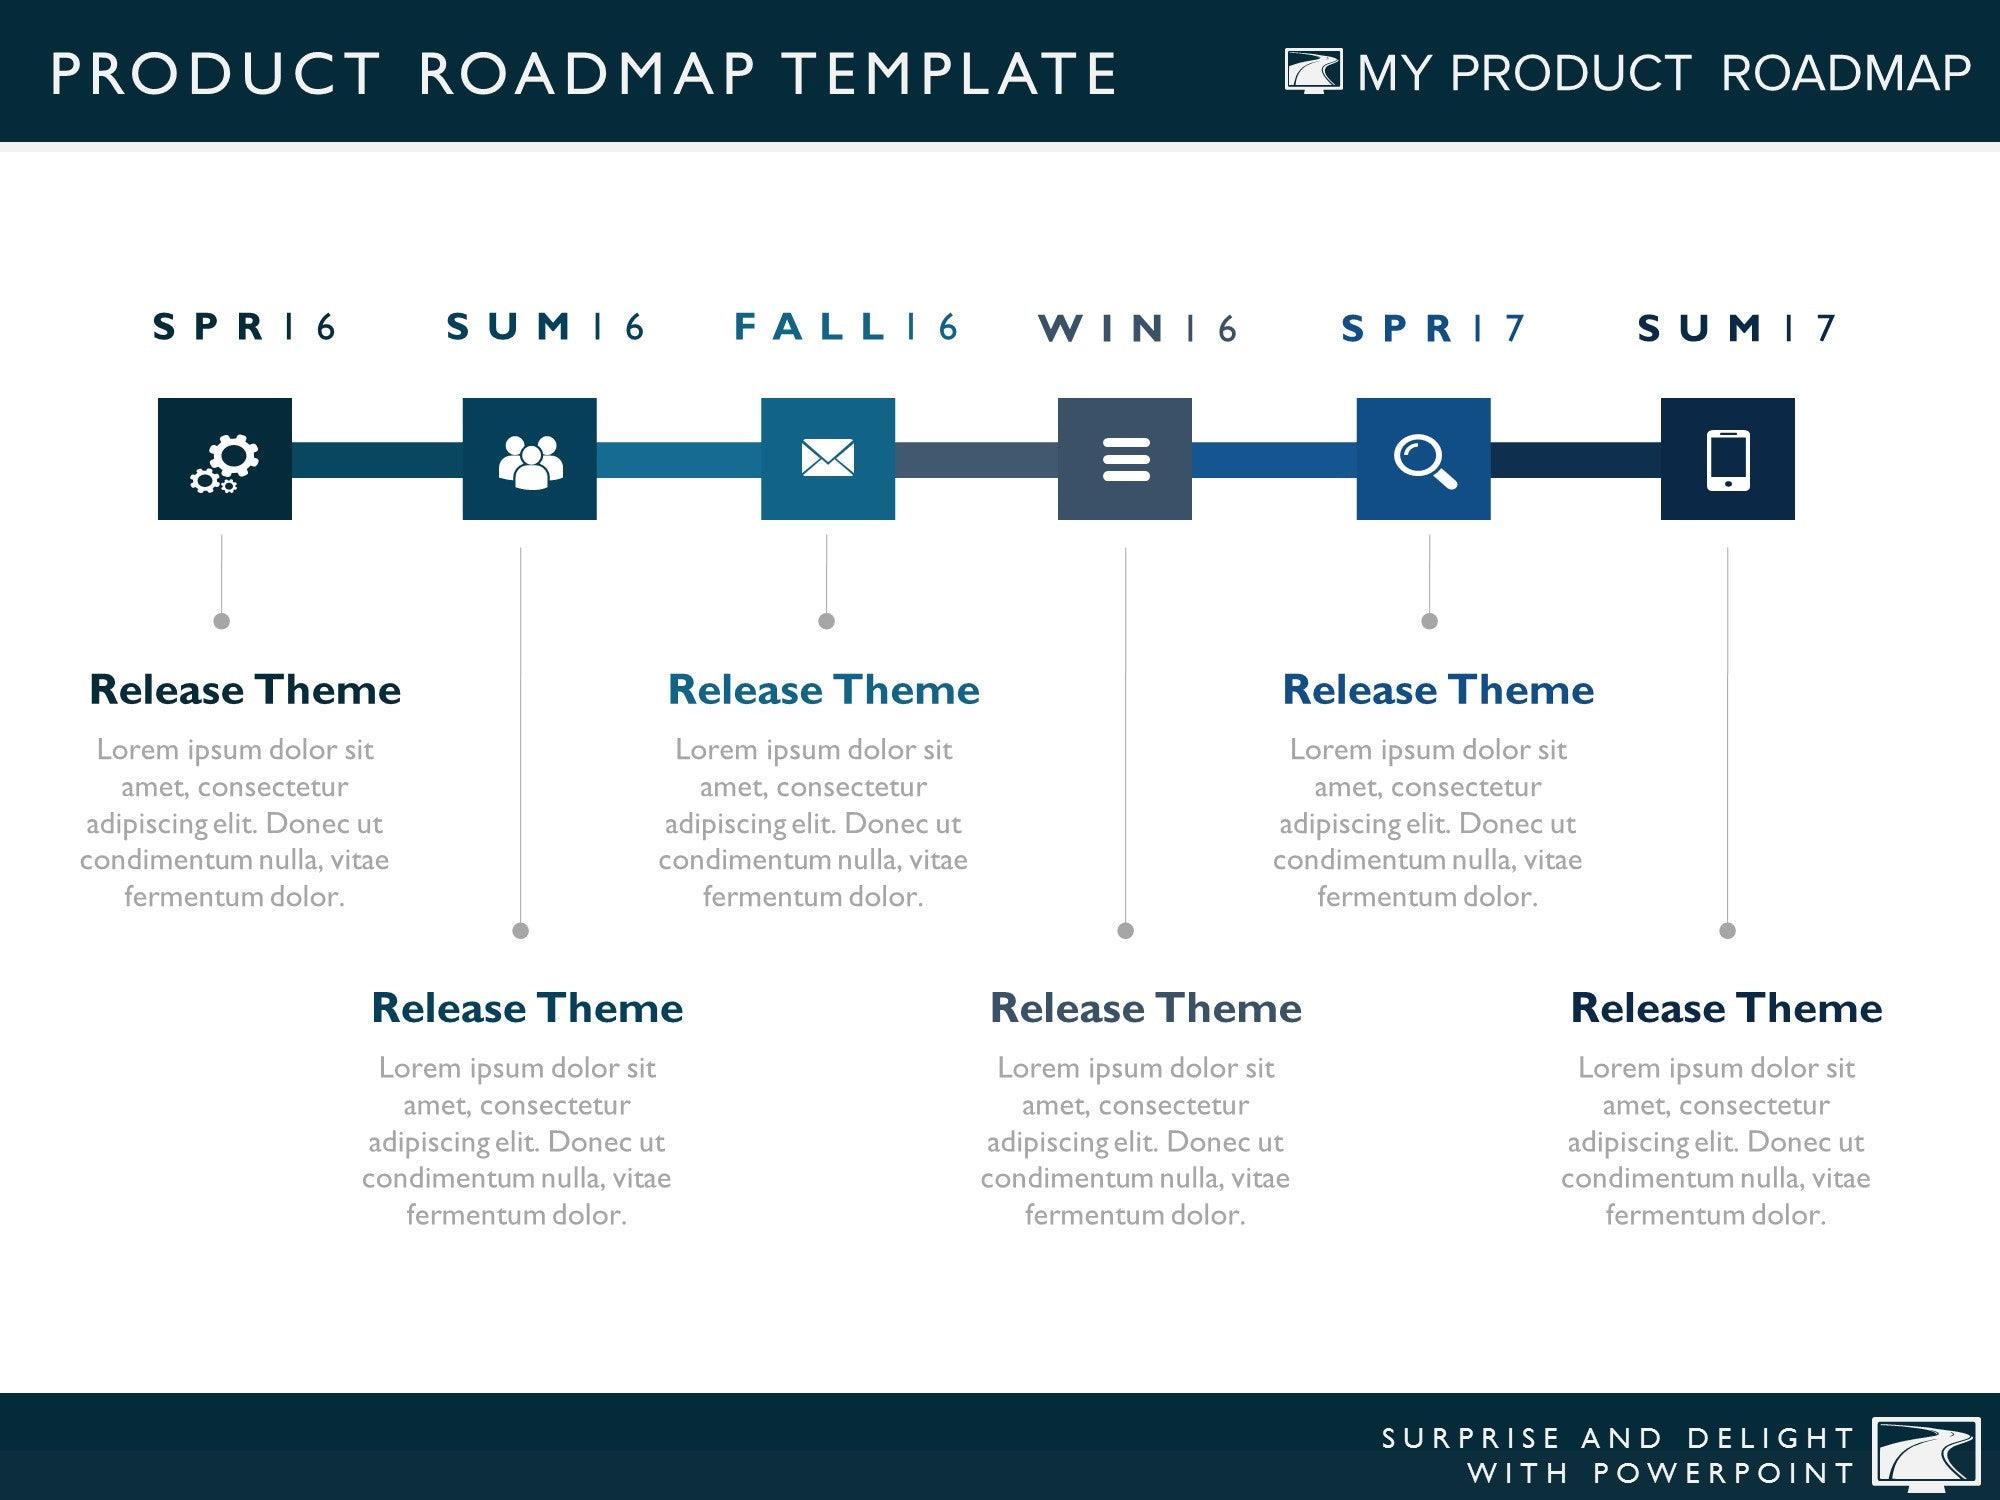 Product roadmap templates for powerpoint for Software development roadmap template